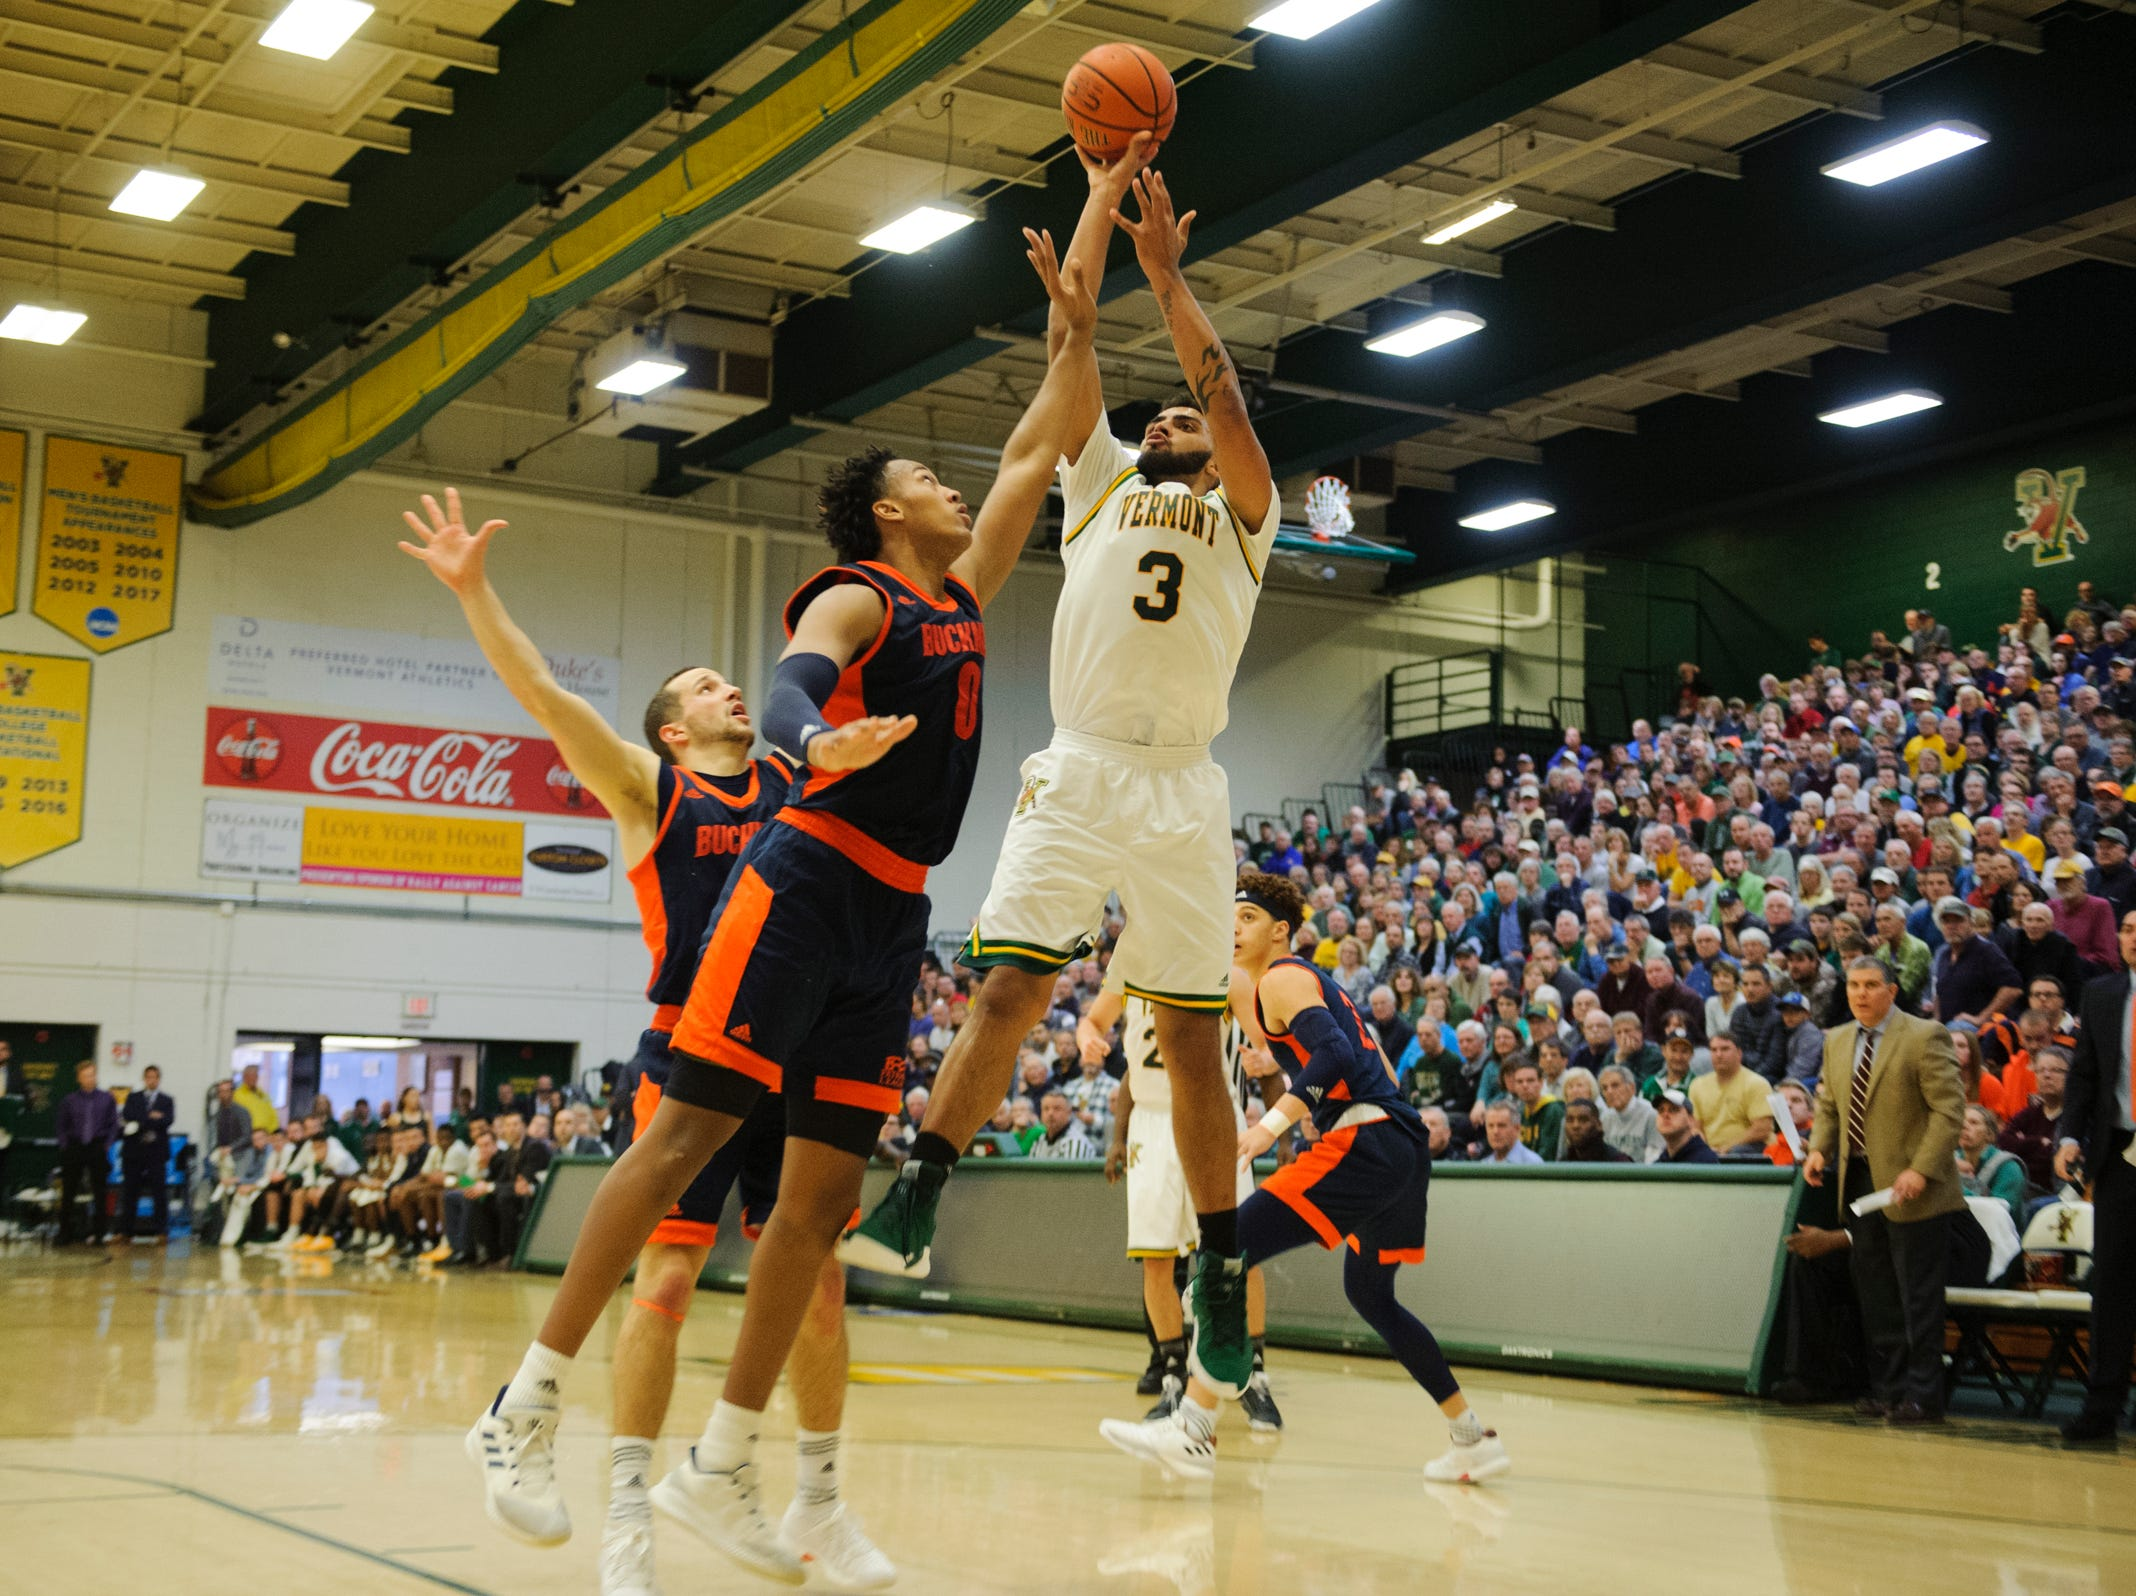 Vermont forward Anthony Lamb (3) shoots the ball over Bucknell's Paul Newman (0) during the men's basketball game between the Bucknell Bison and the Vermont Catamounts at Patrick Gym on Sunday afternoon November 25, 2018 in Burlington.